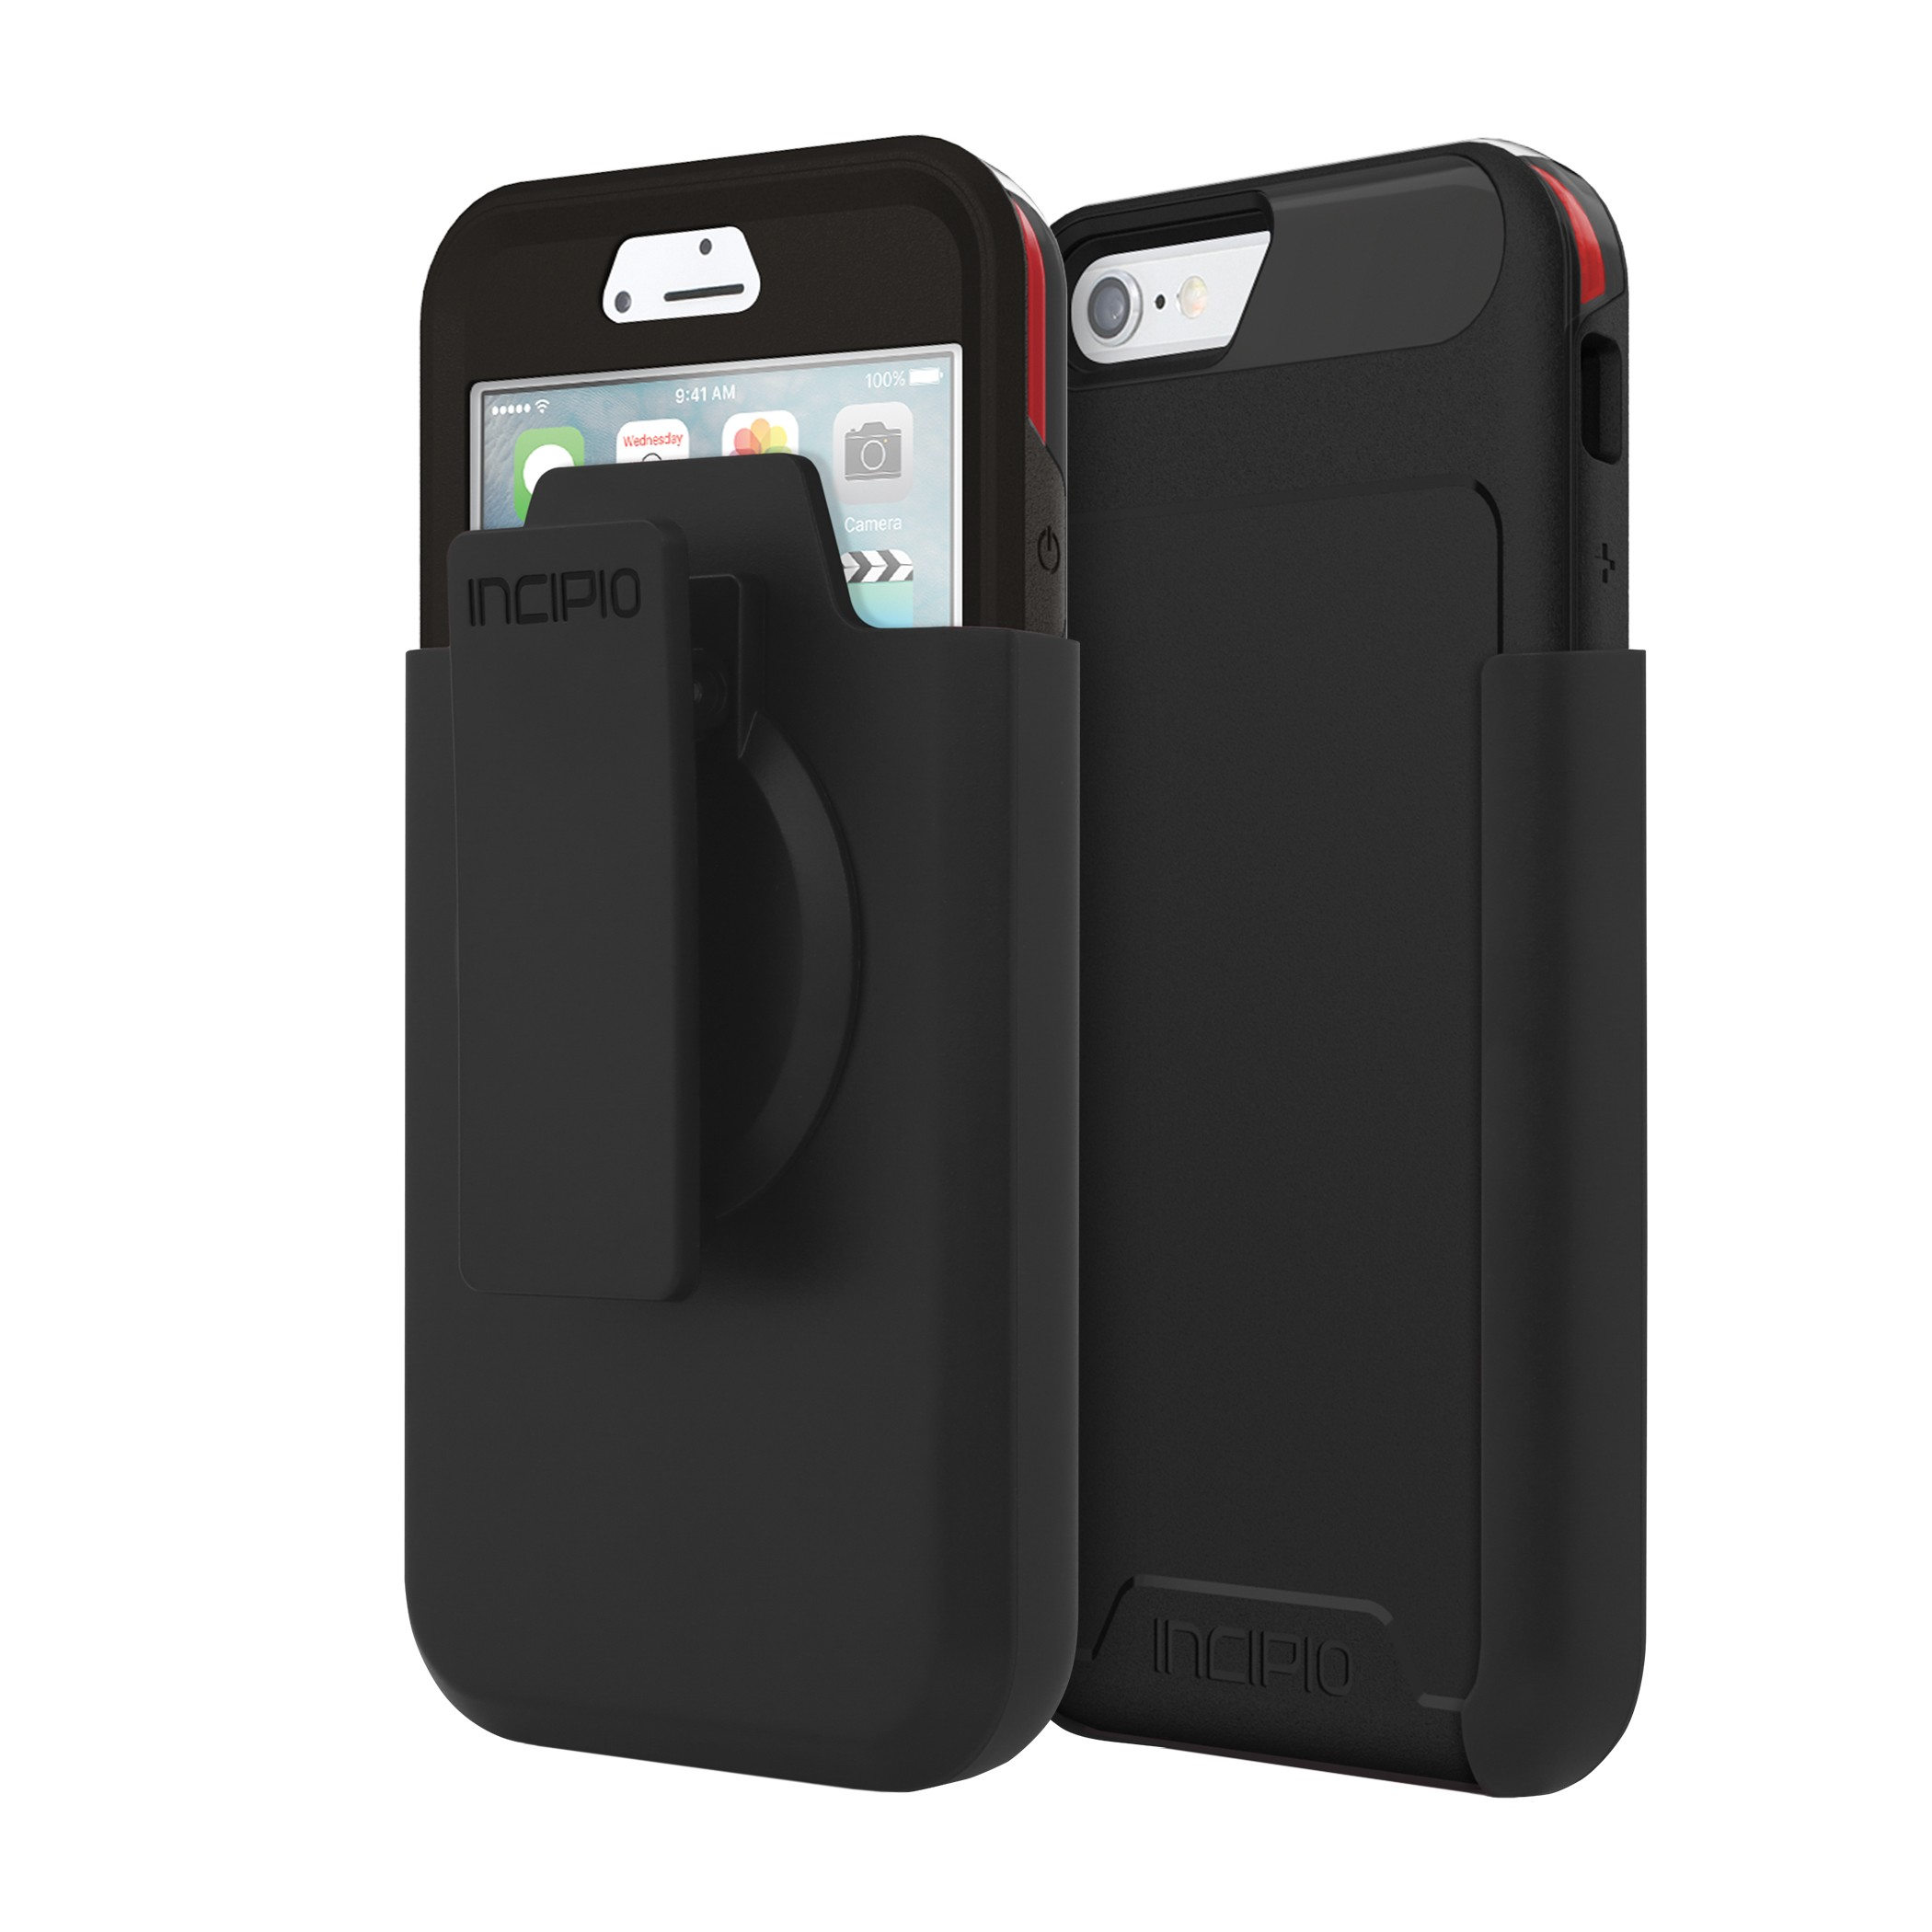 Incipio Performance Level 5 Case with Holster for iPhone 6/6S - Black/Red